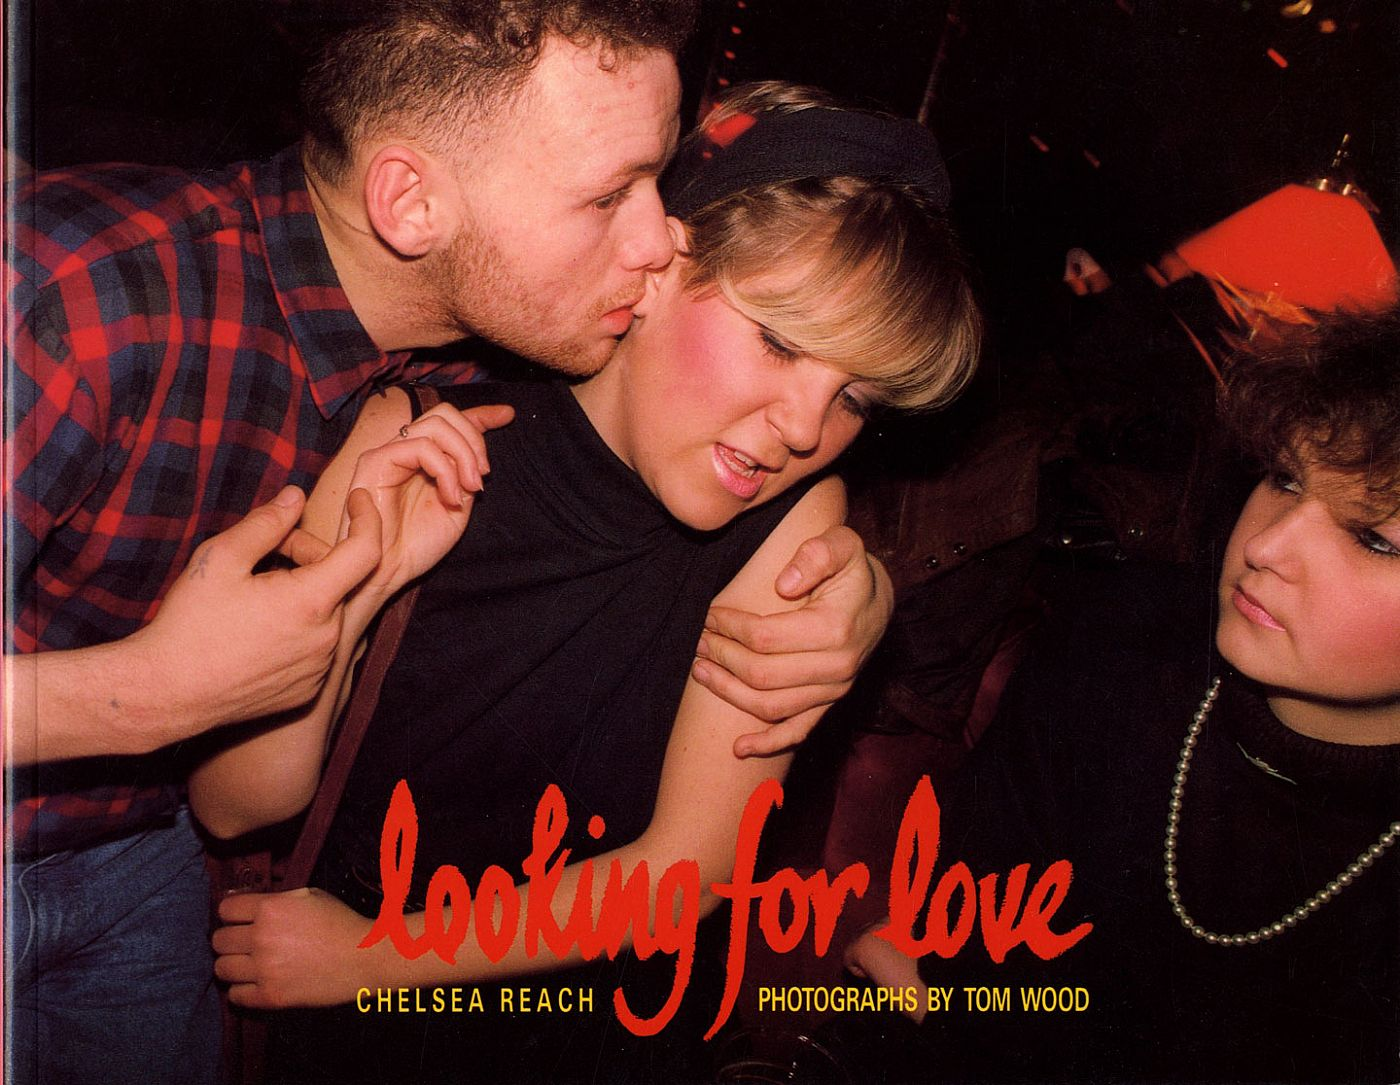 Tom Wood: Looking for Love, Photographs from Chelsea Reach Nightclub, New Brighton, Merseyside